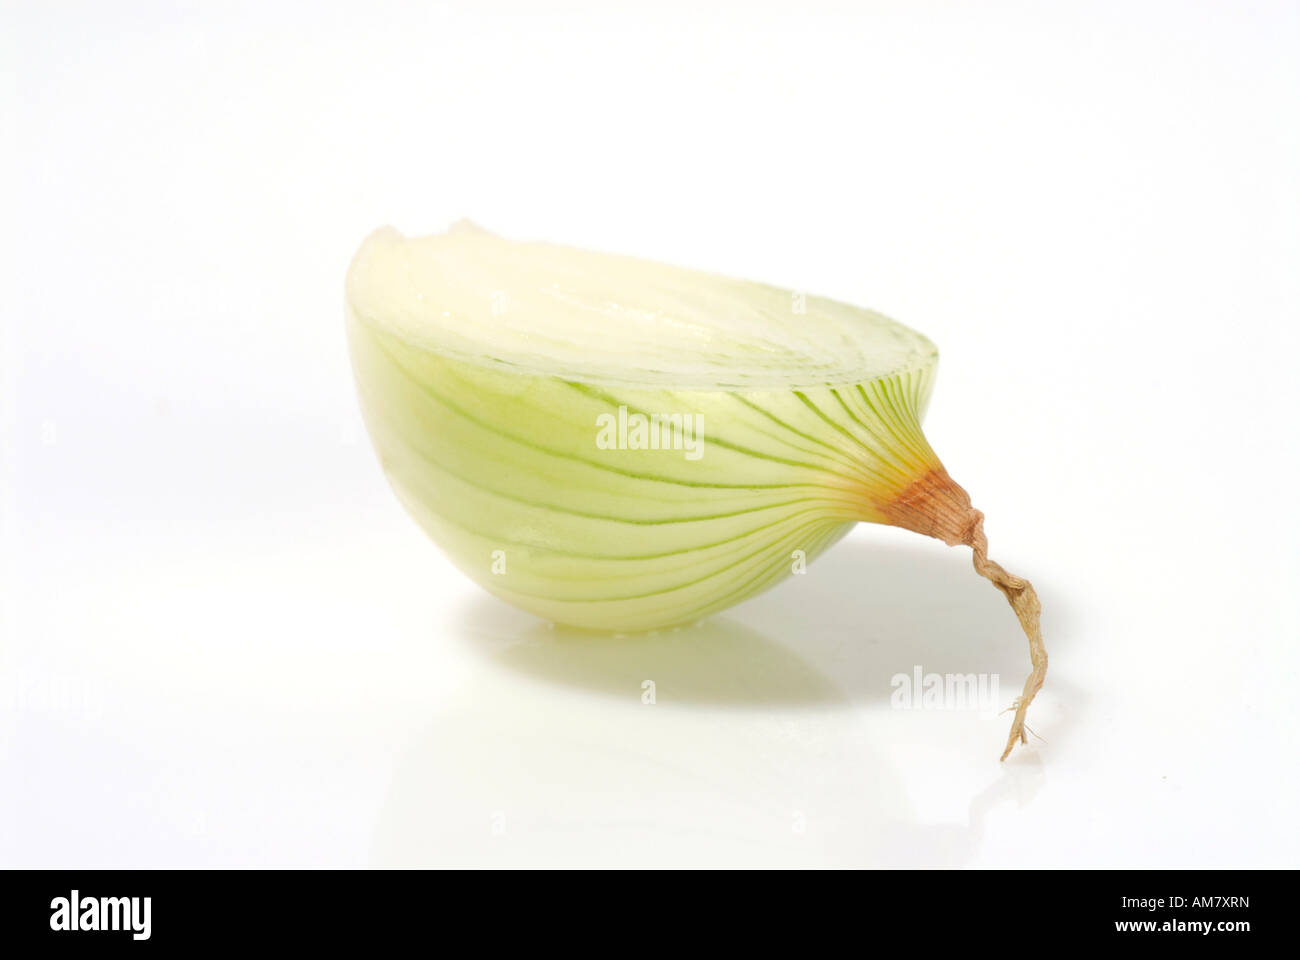 Cut through onion - Stock Image